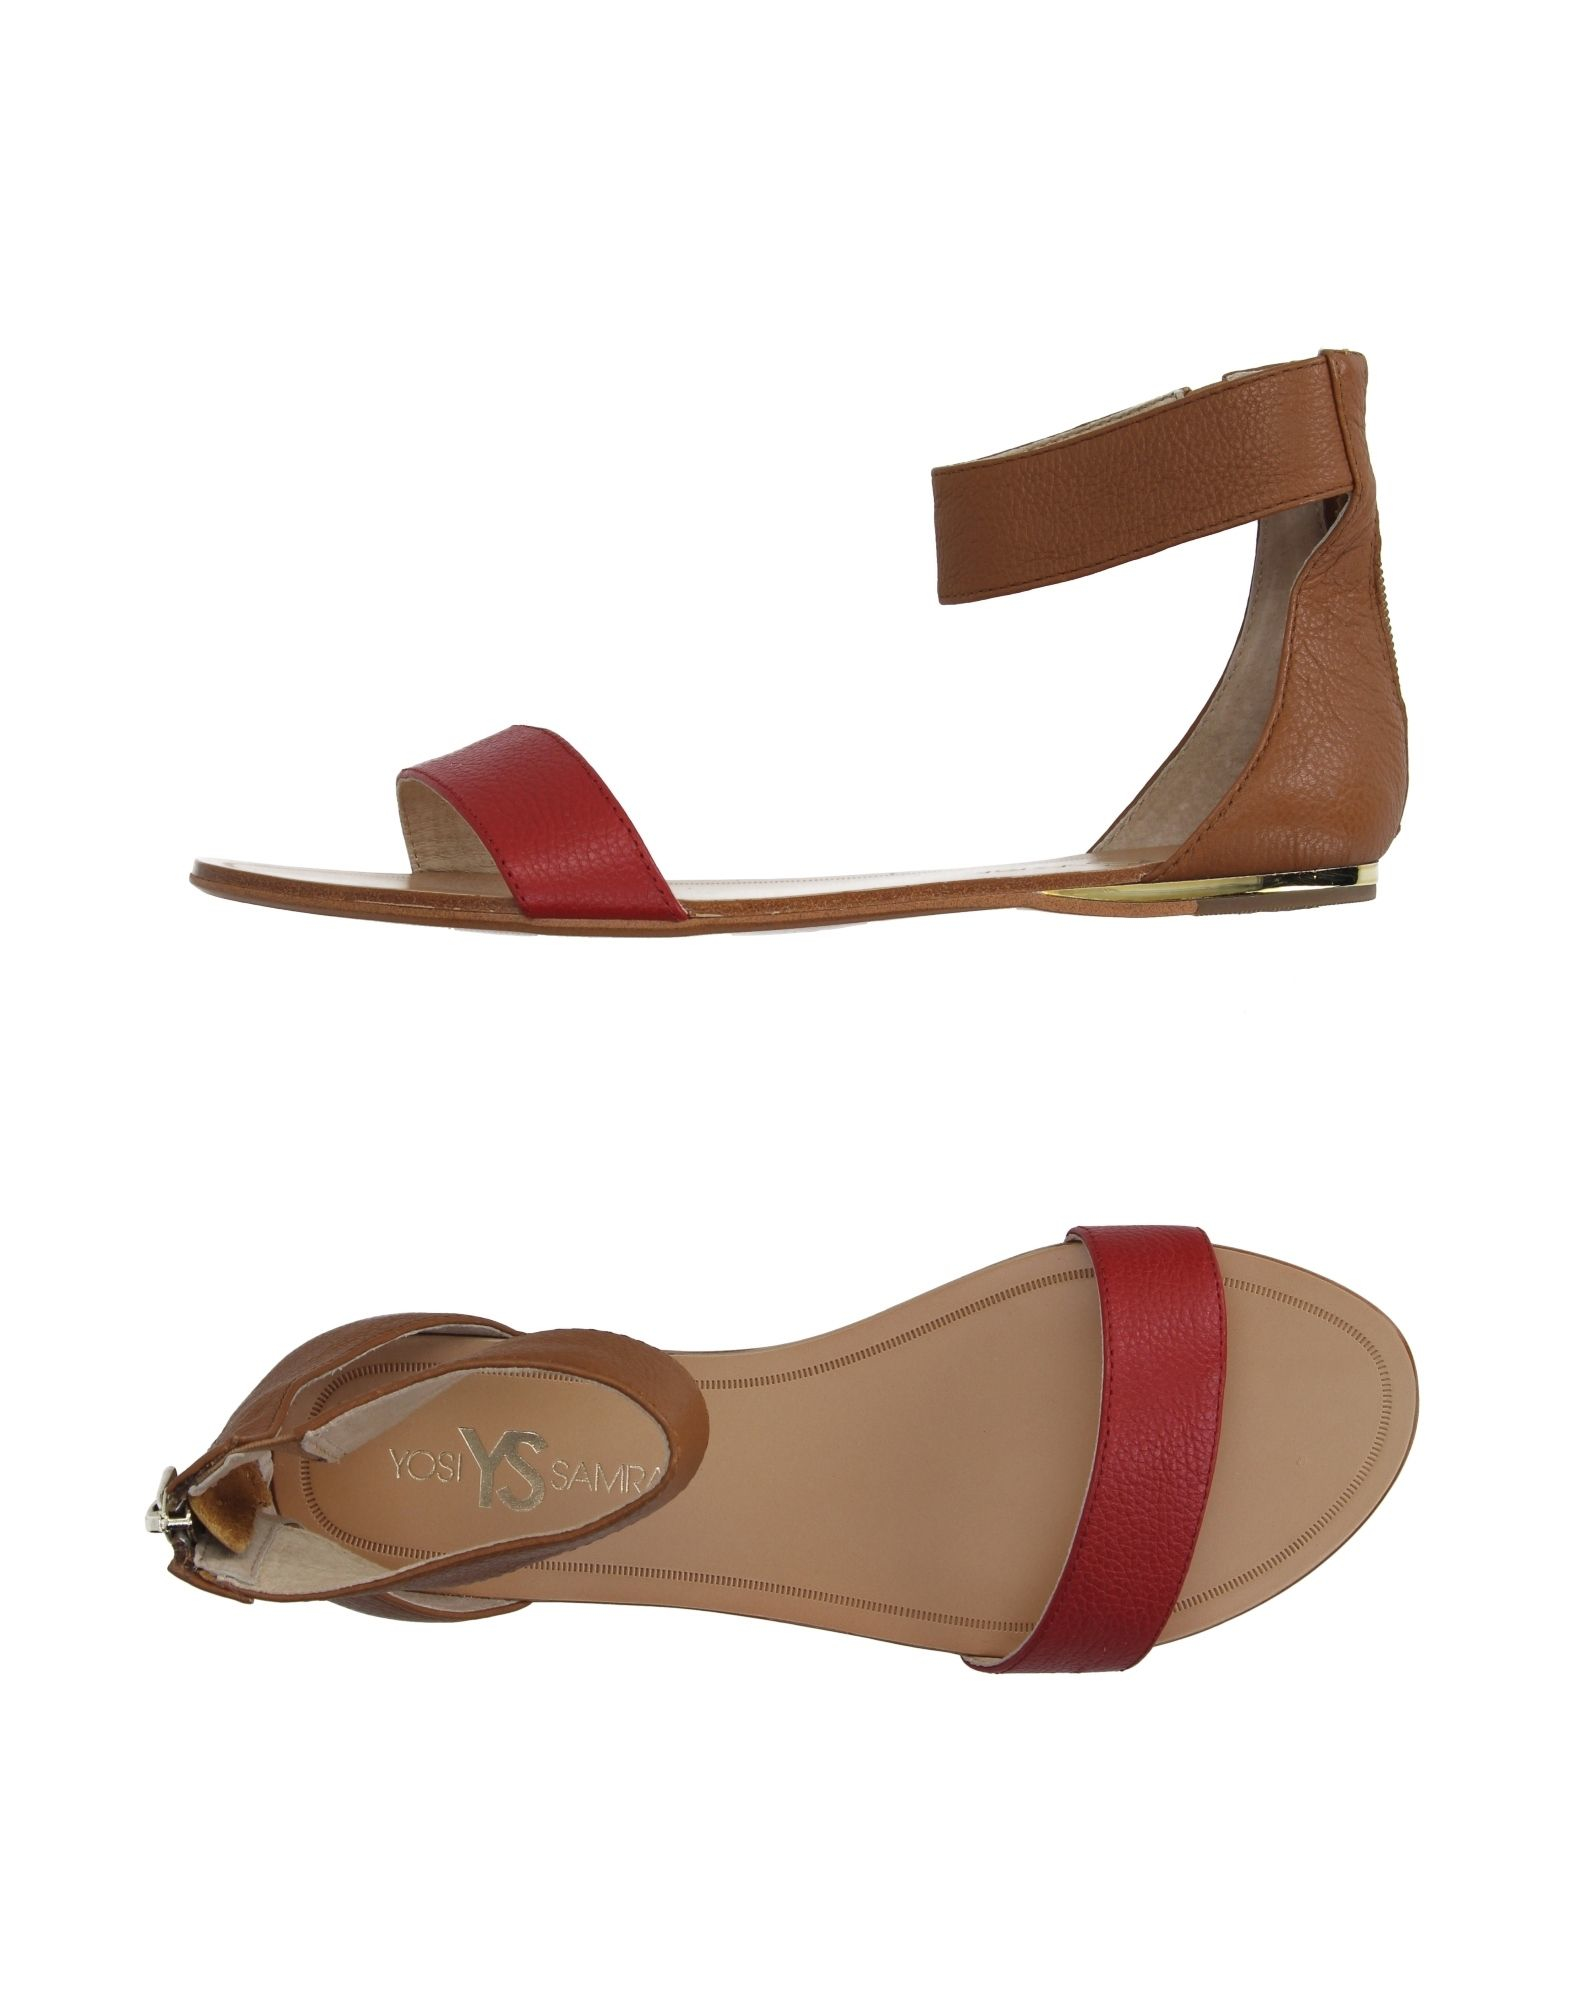 yosi samra sandals in lyst